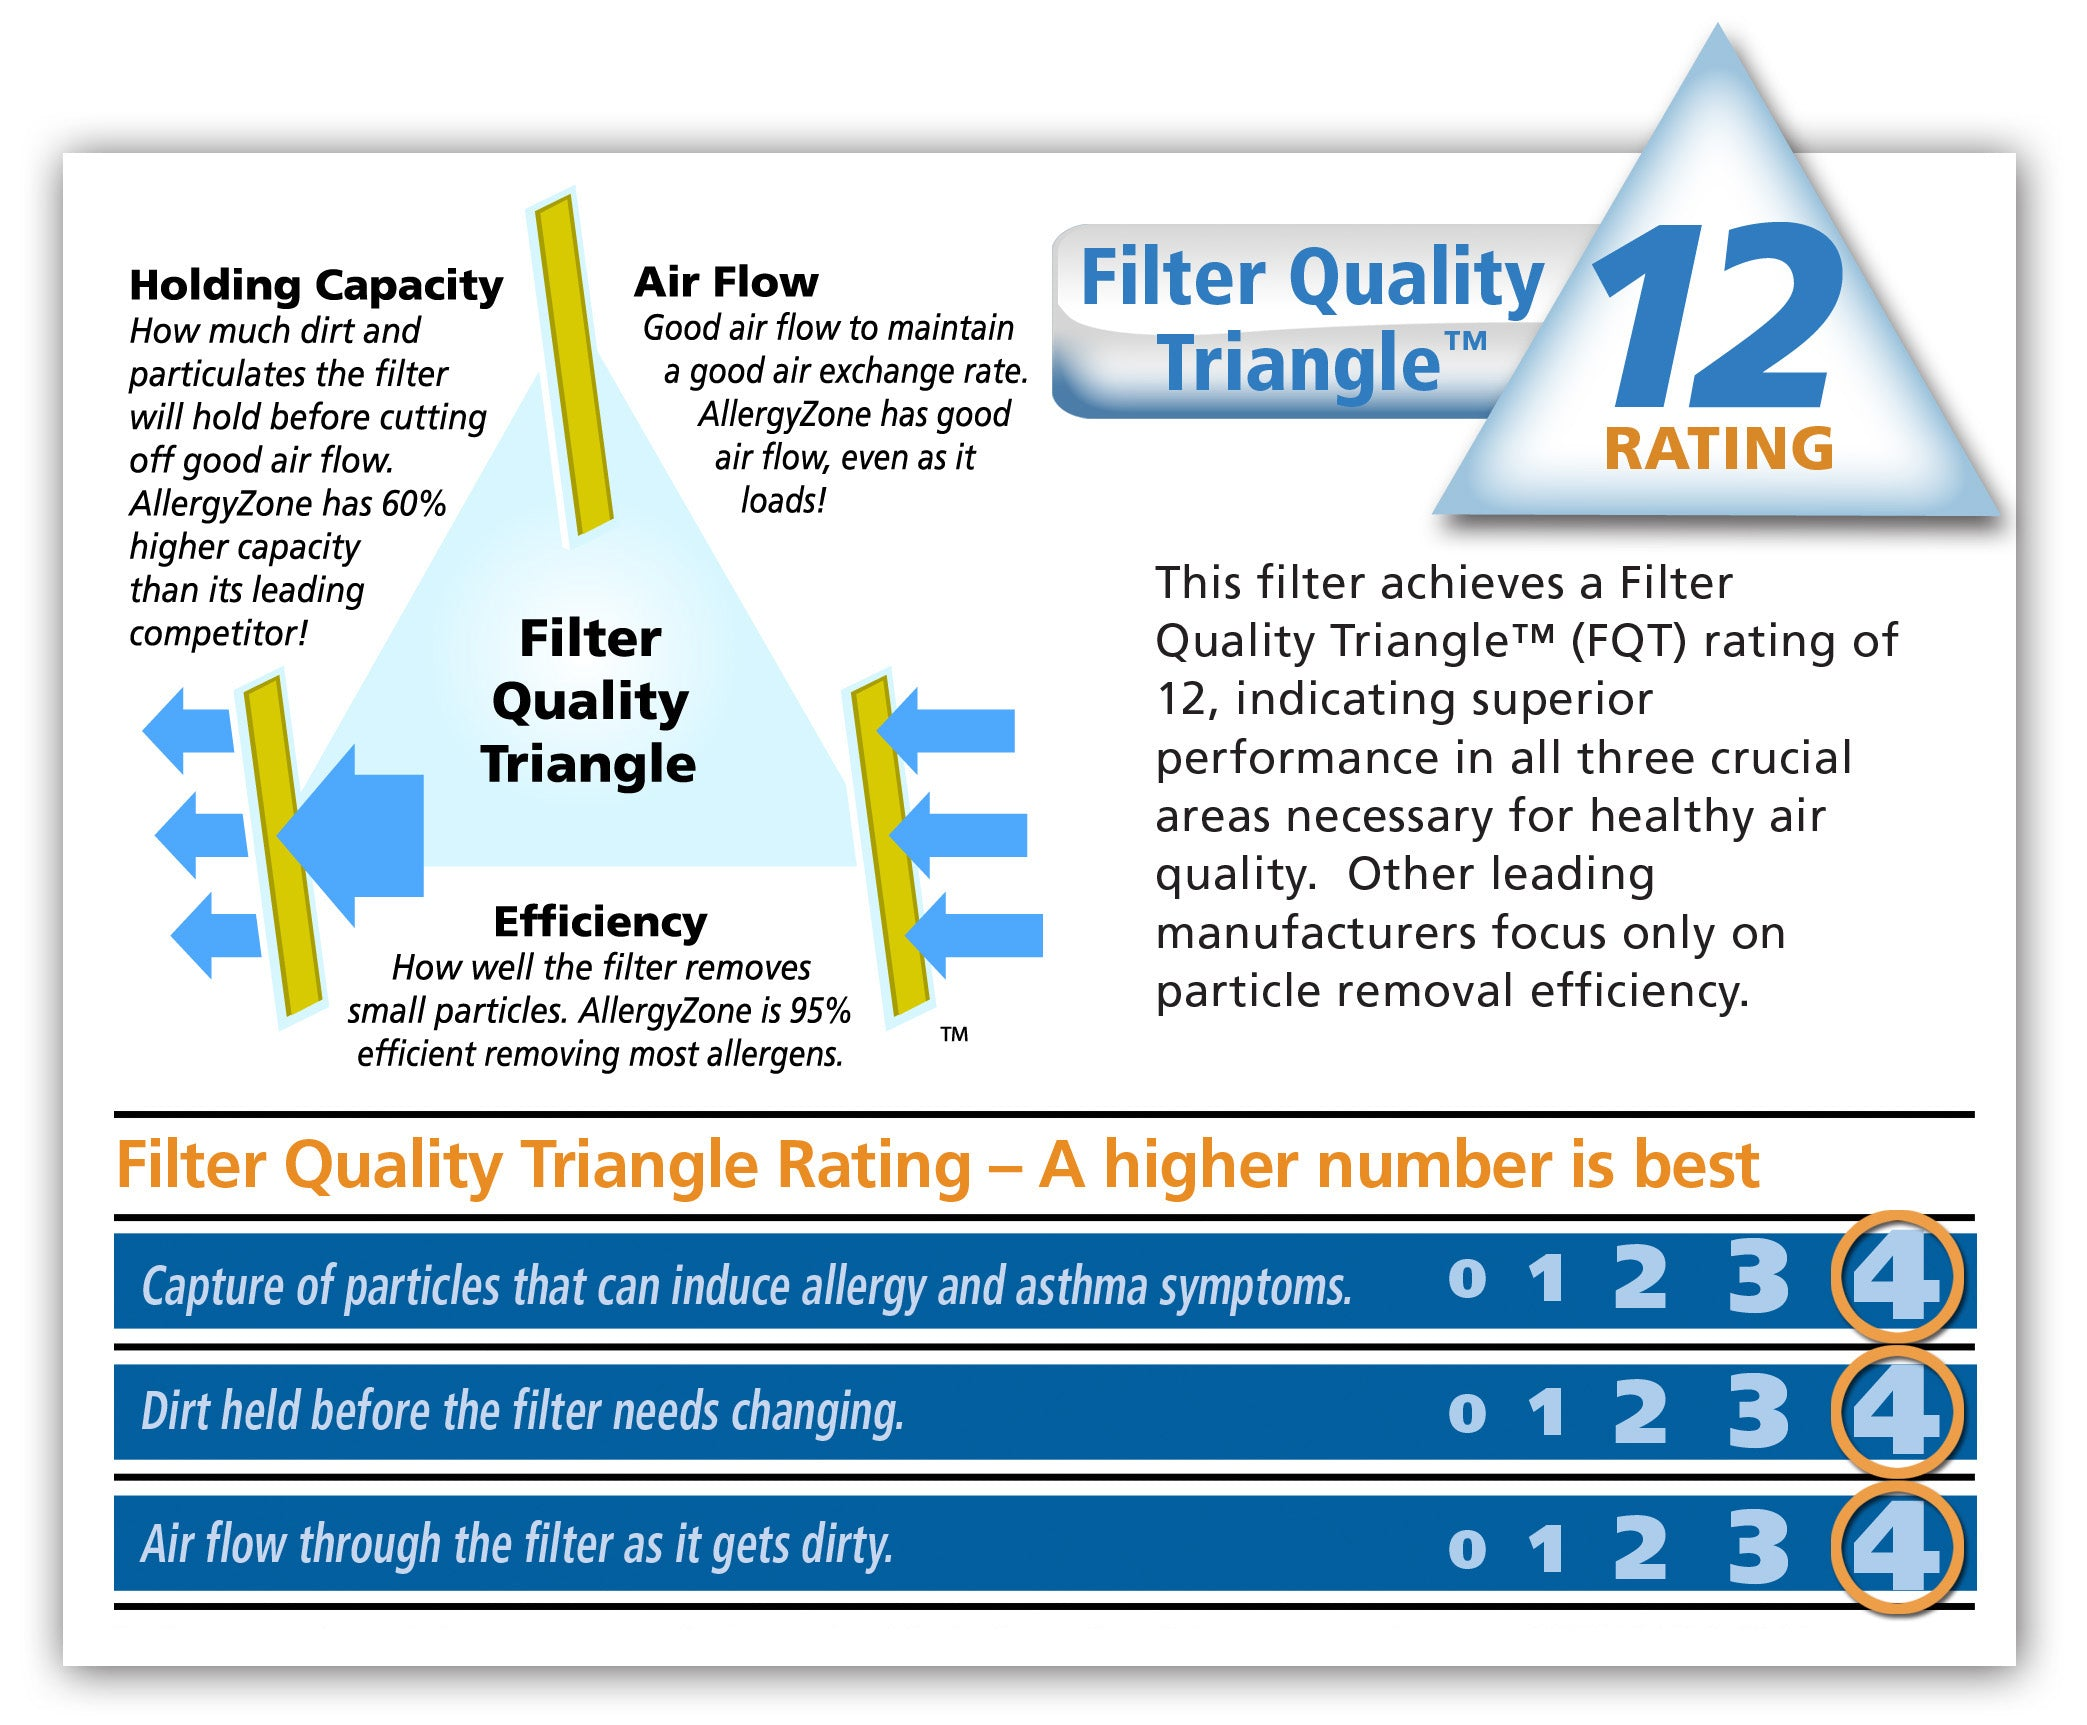 Best furnace air filters for allergies -  Indicating Superior Performance In Three Areas Crucial For Healthy Air Quality Efficiency Air Flow And Holding Capacity No Other Filter Matches The